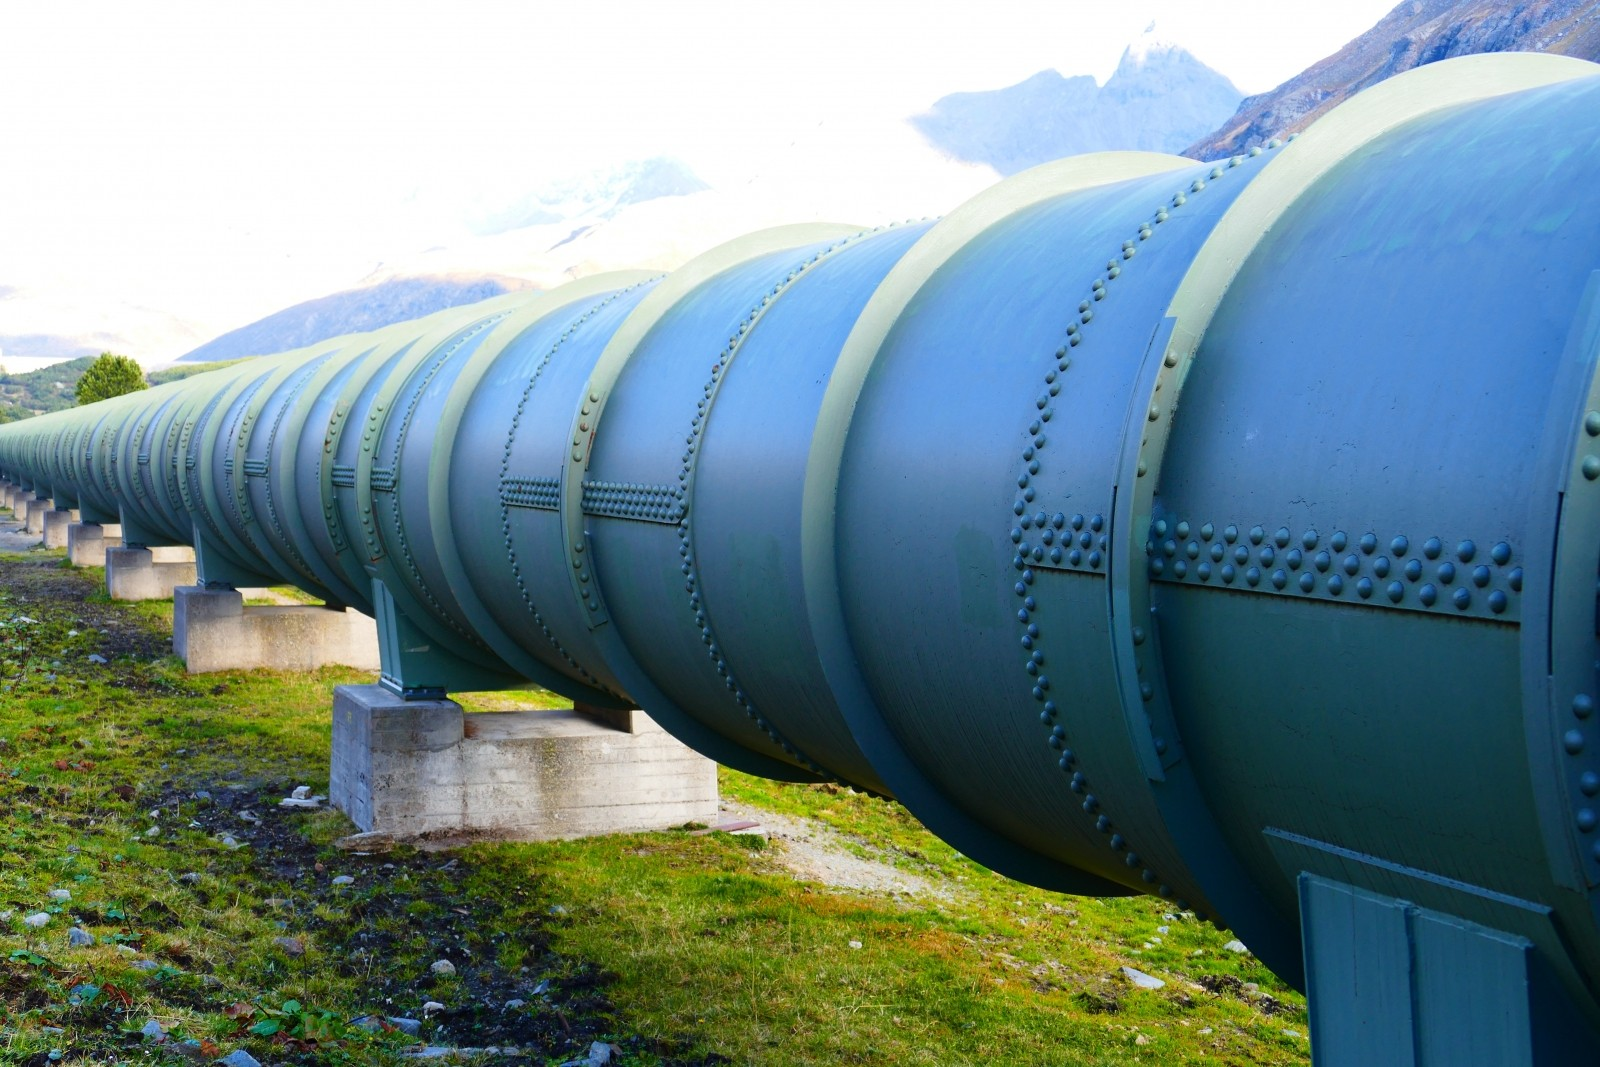 pressure-water-line-tube-pipeline-water-guide